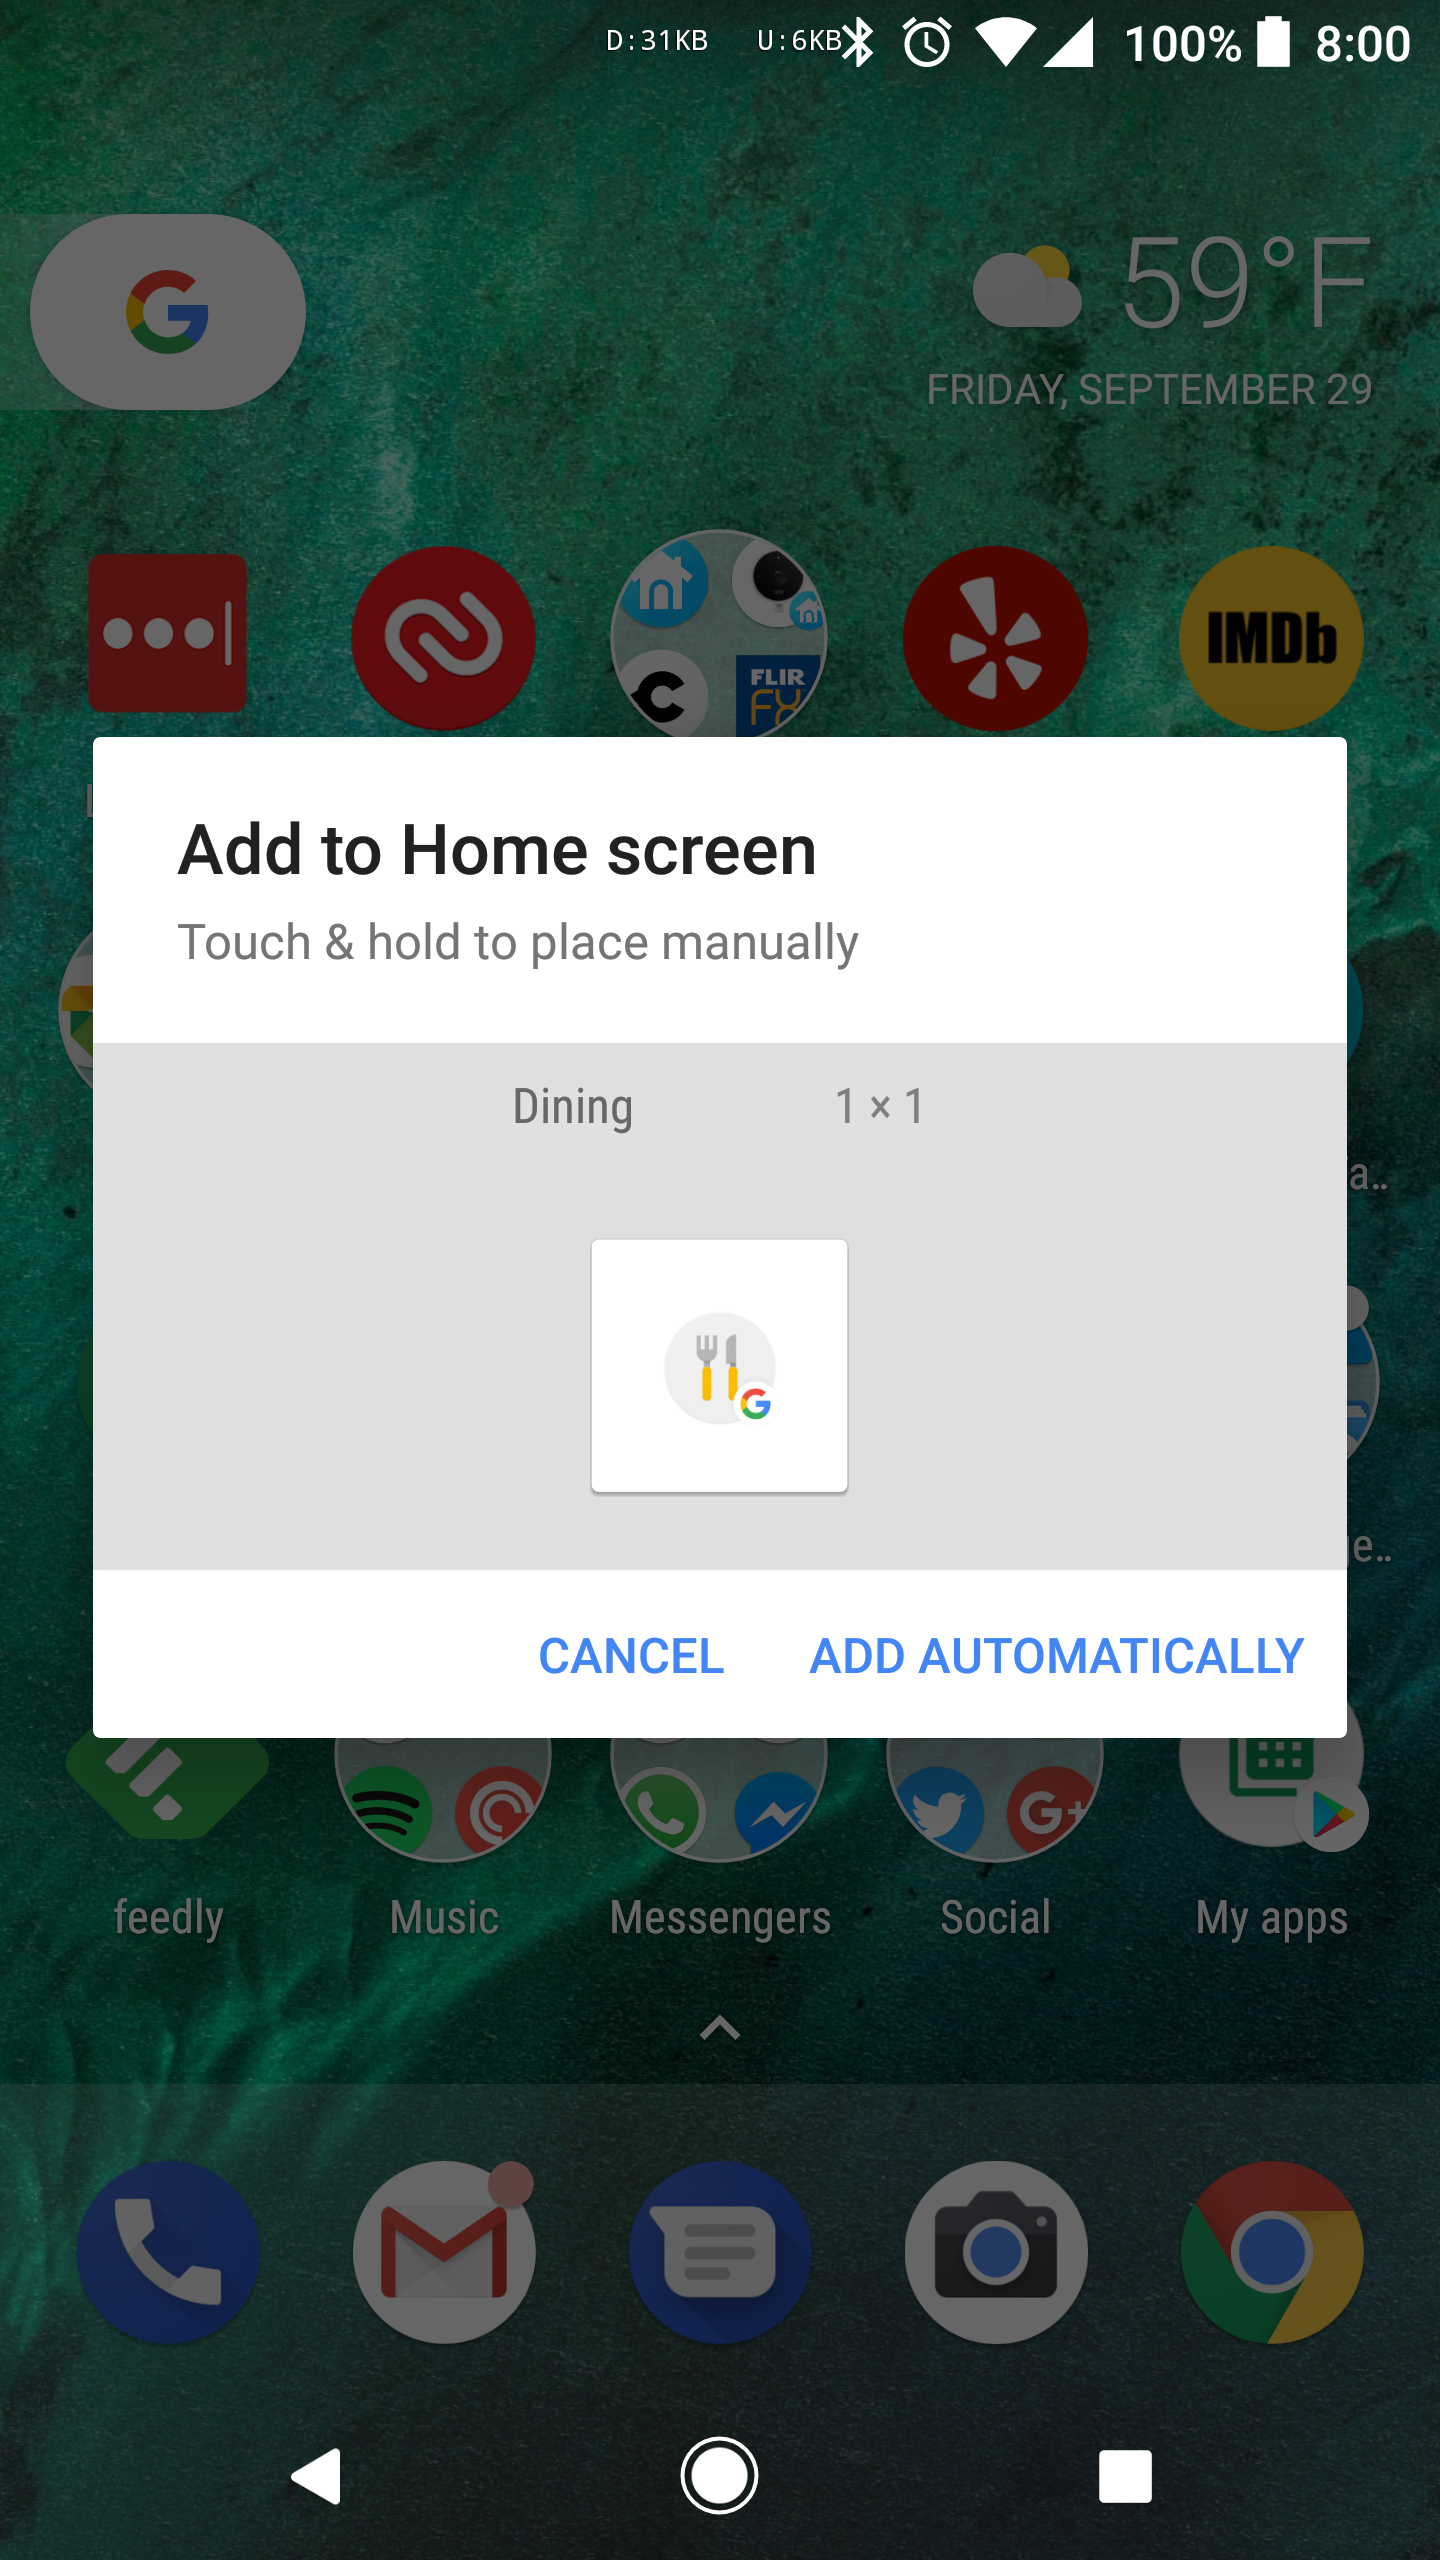 Google app now has home screen shortcuts for entertainment